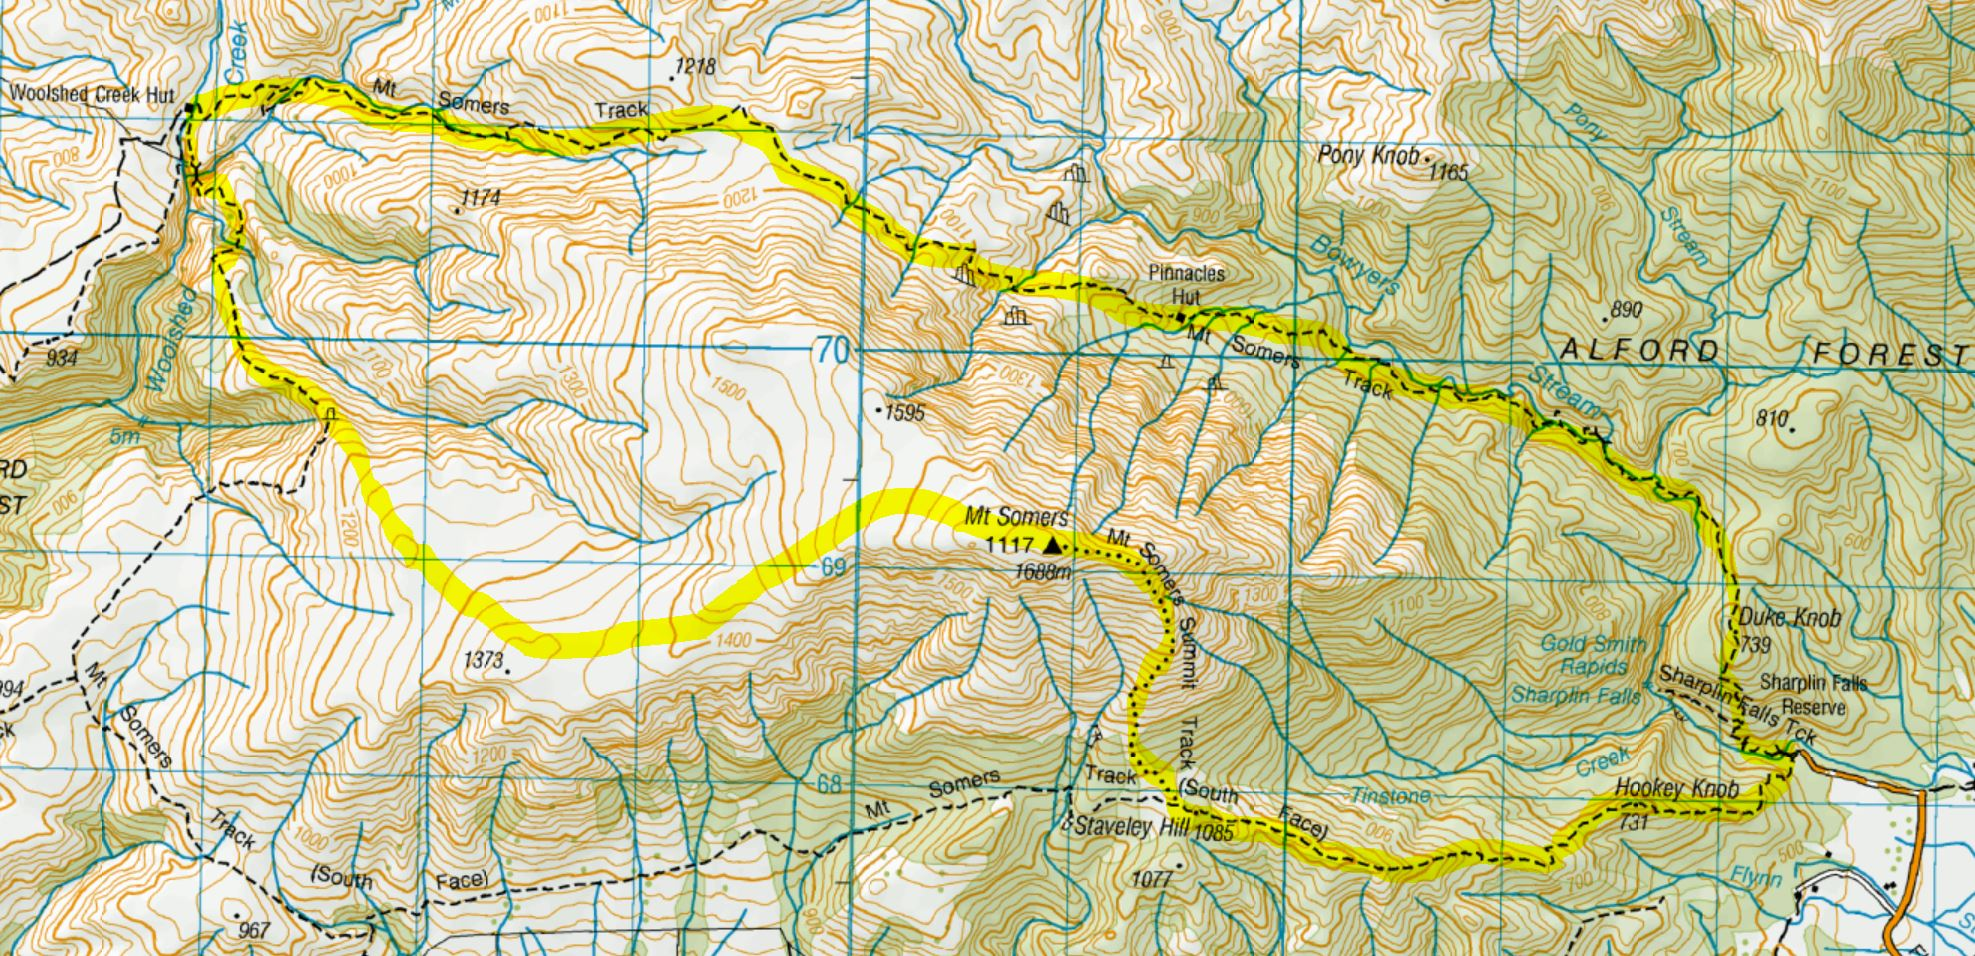 Our Mt Somers route